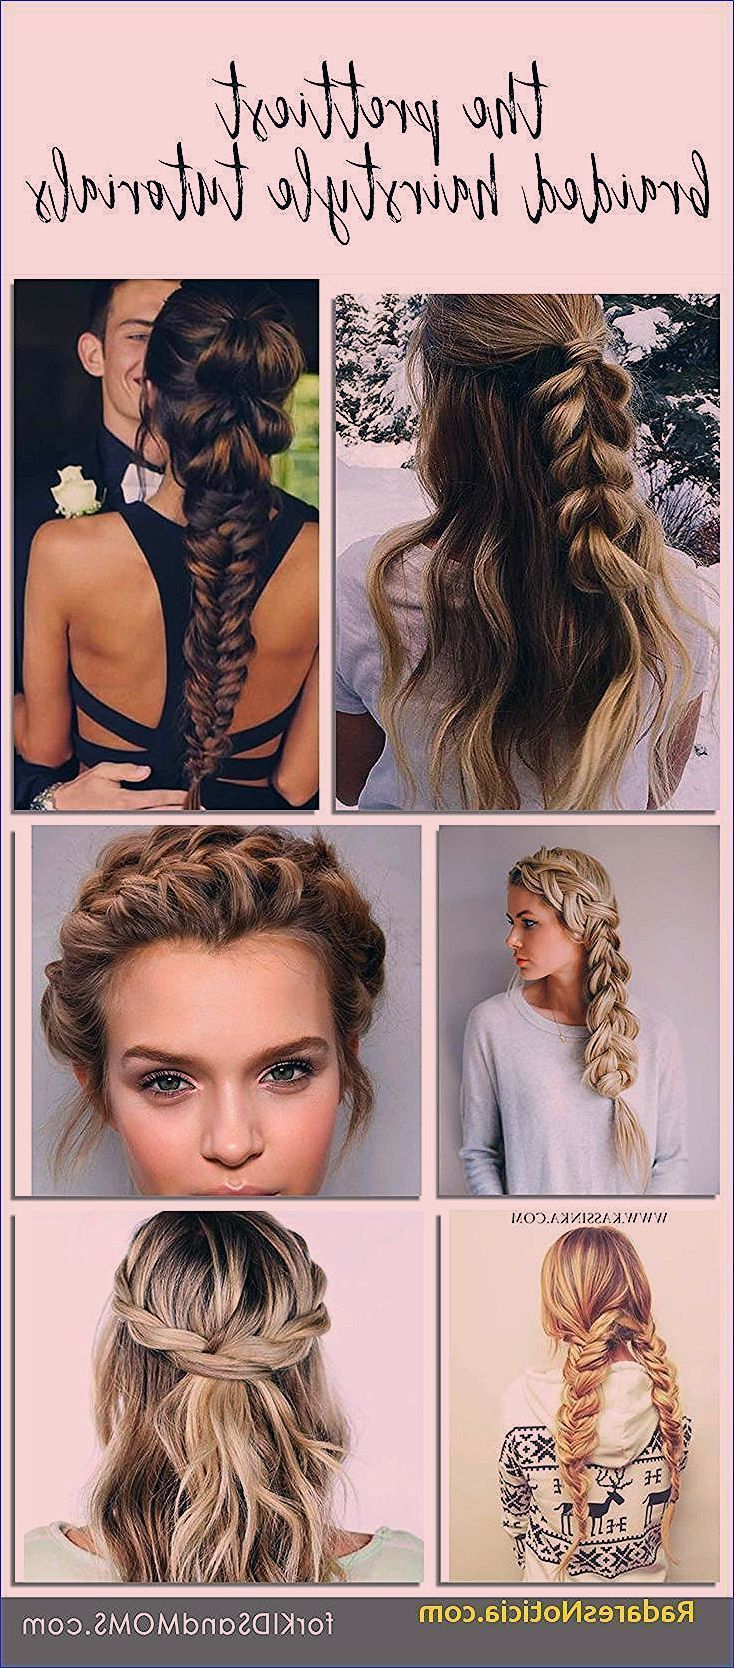 Easy Braided Hairstyles For Long Hair Youtube 126 Best Hairstyles 1920slonghair Easy Braided Hairstyles For Long Hair Youtube 126 Best Hairstyles Easy Braide Braids For Long Hair Easy Braided Hairstyles